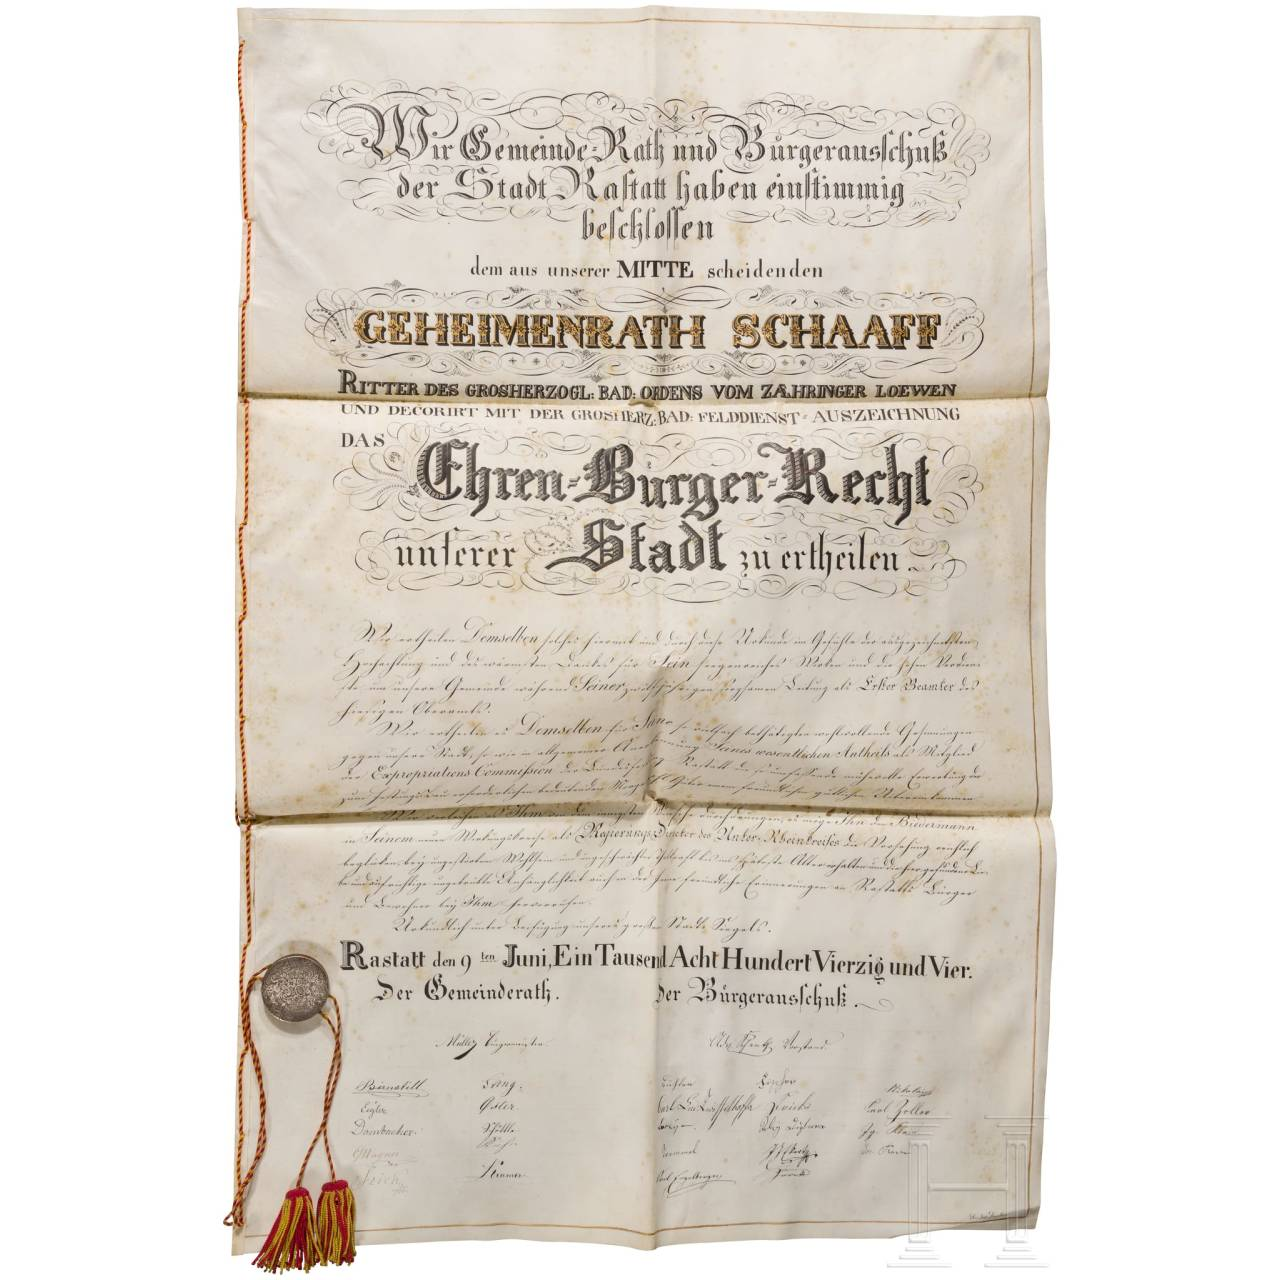 Privy Councillor Friedrich Theodor Schaaff - Honorary Citizenship Certificate of the City of Rastatt 1844